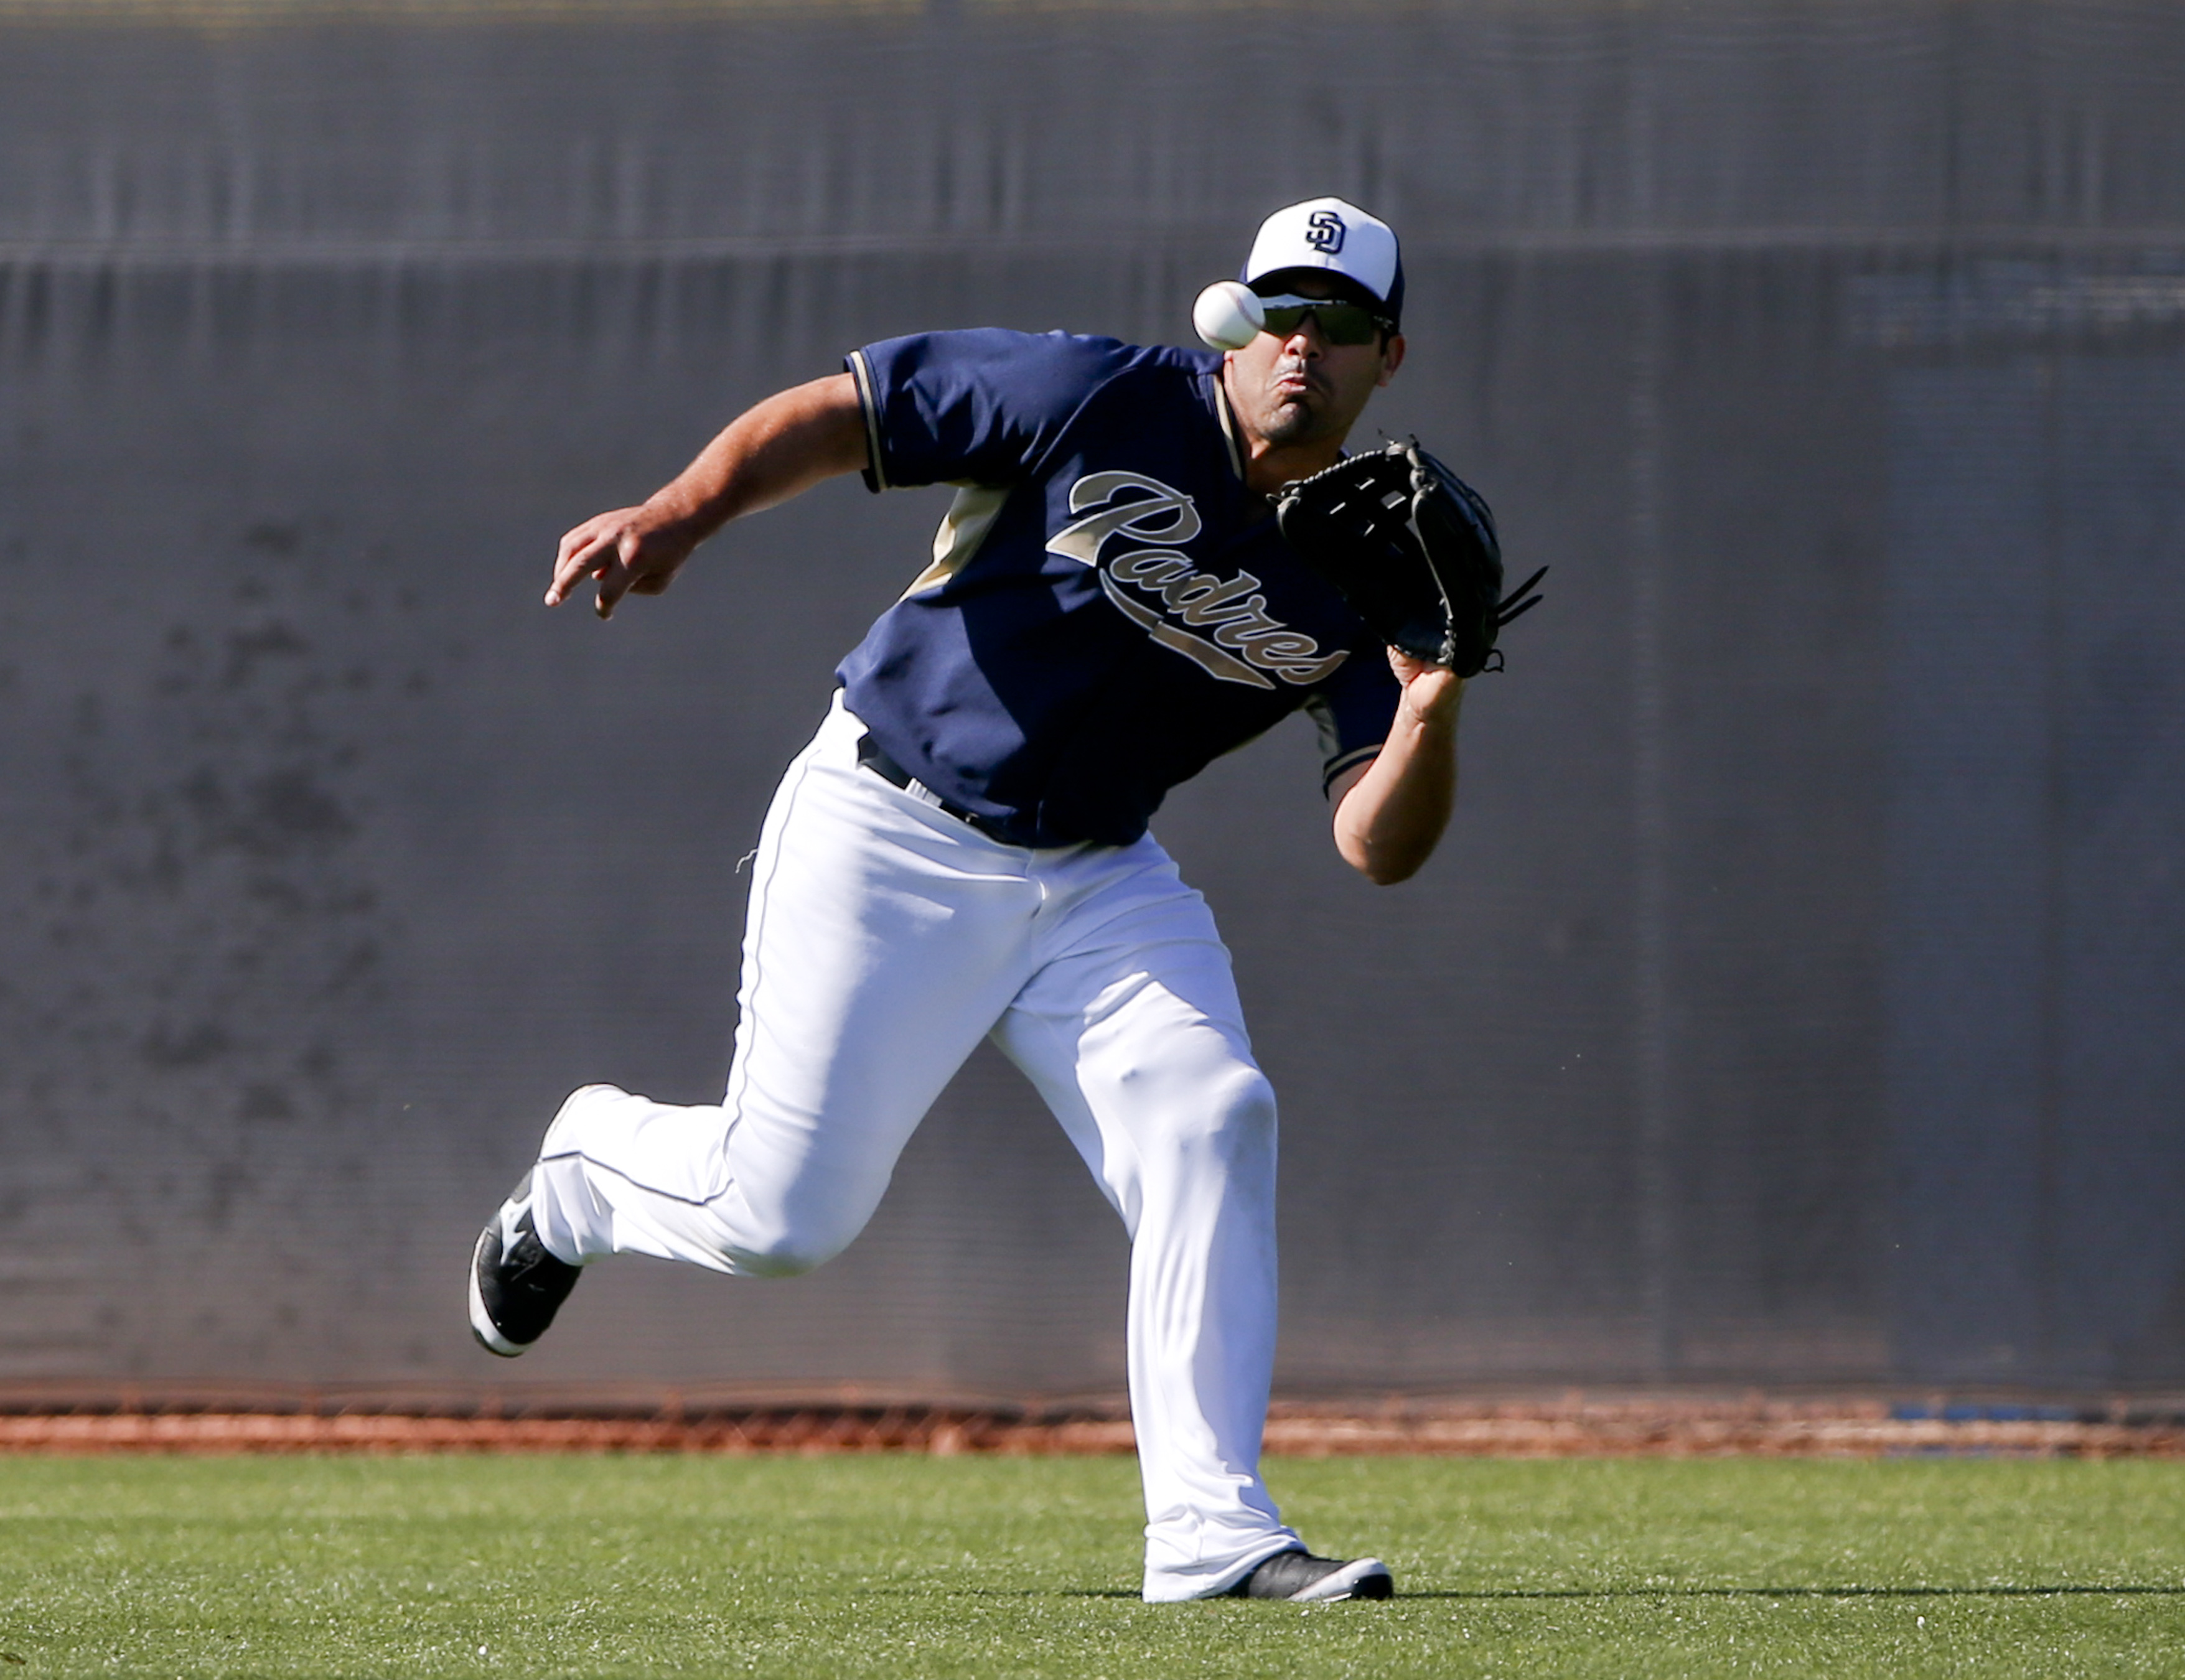 FILE- In this March 23, 2015, file photo, San Diego Padres left fielder Carlos Quentin runs down a line drive during fielding drills for outfielders prior to a spring training baseball game against the Chicago White Sox in Peoria, Ariz.  Quentin retired F